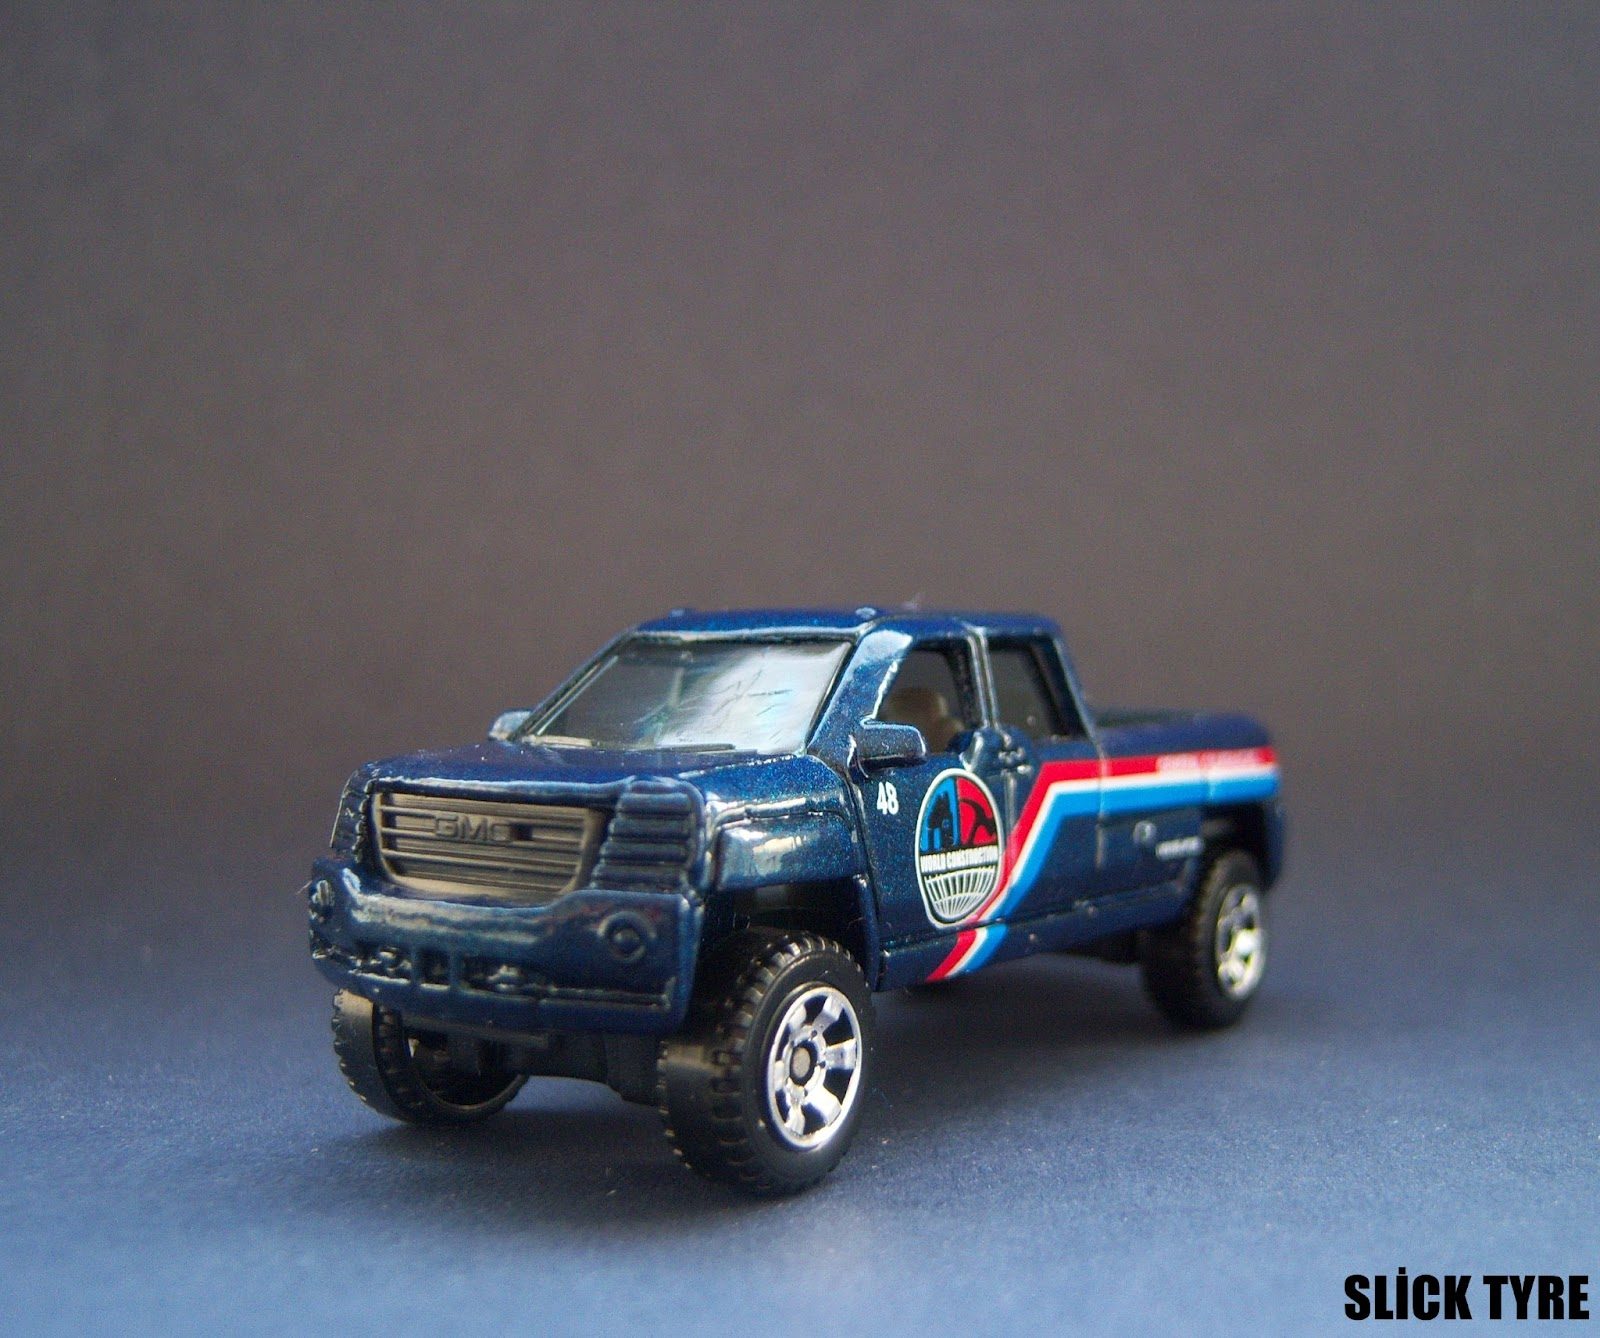 Gmc terradyne photo - 4